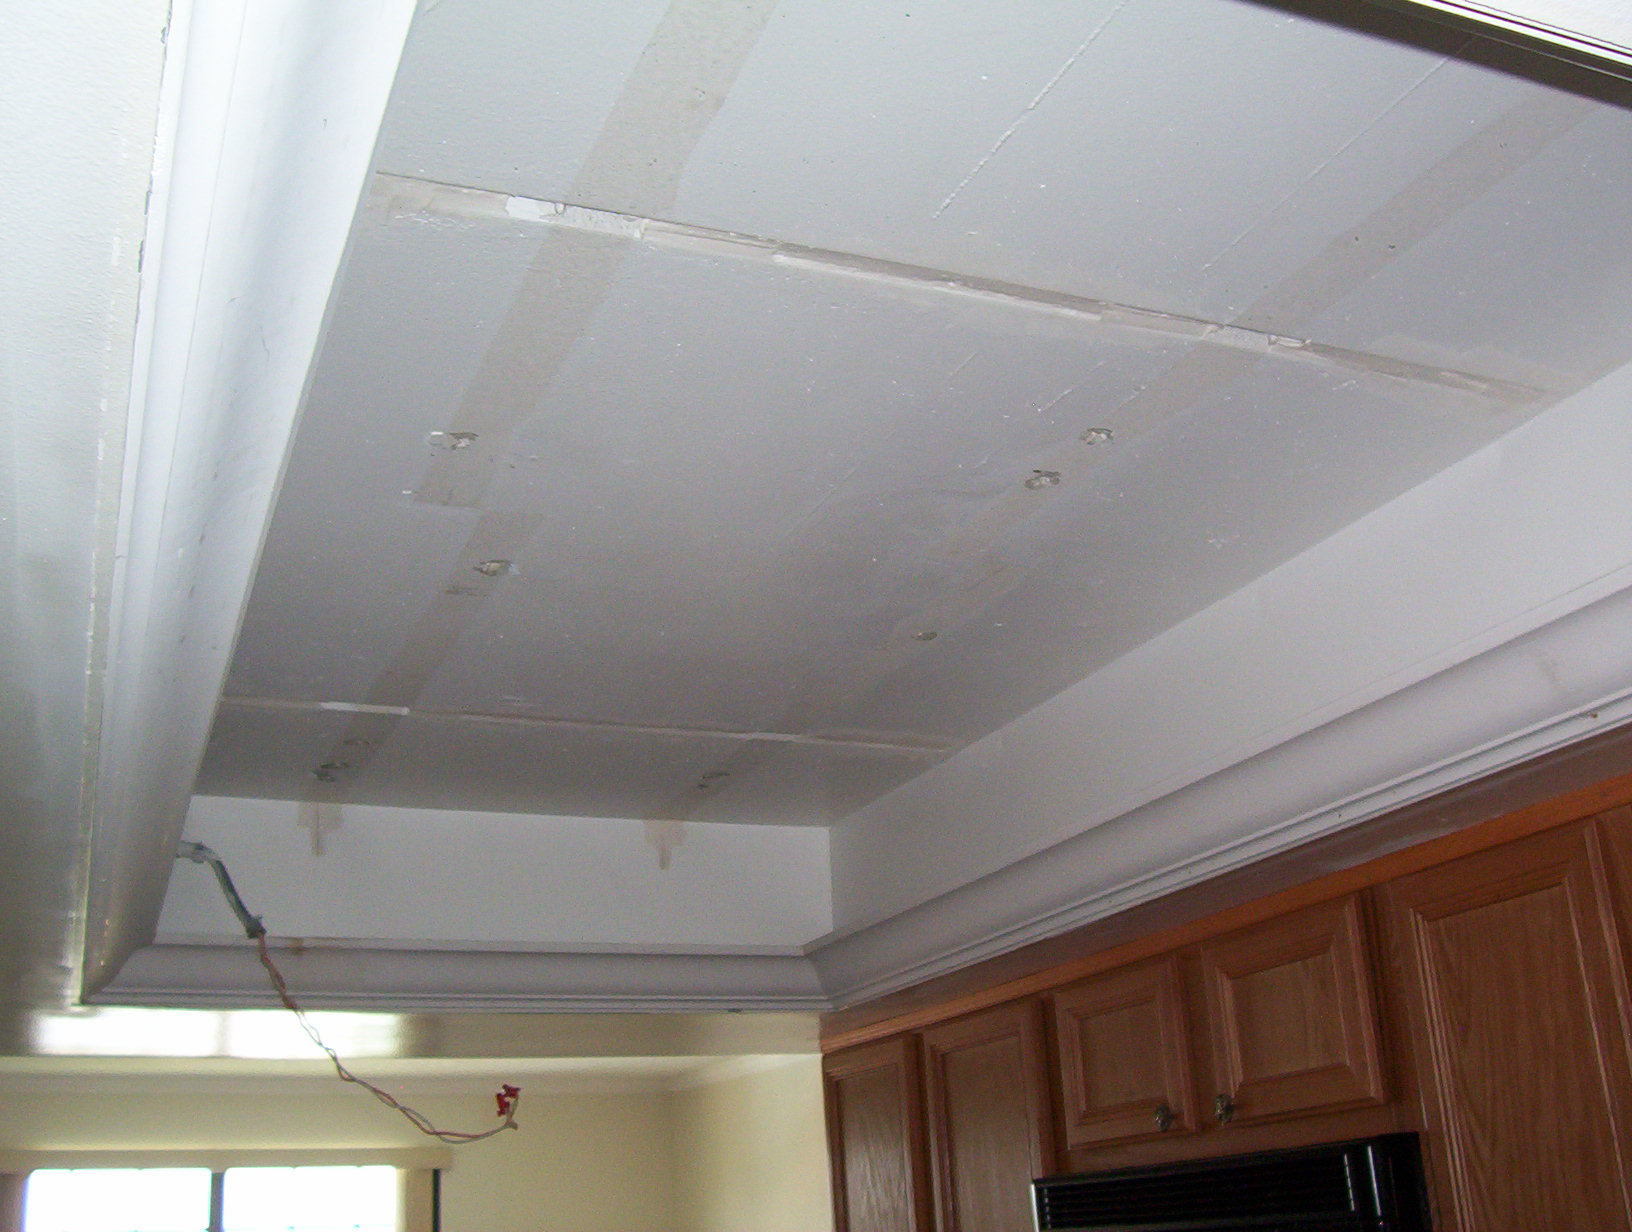 Suspended Ceiling Lights For Kitchen : What to do with my old kitchen drop ceiling lighting